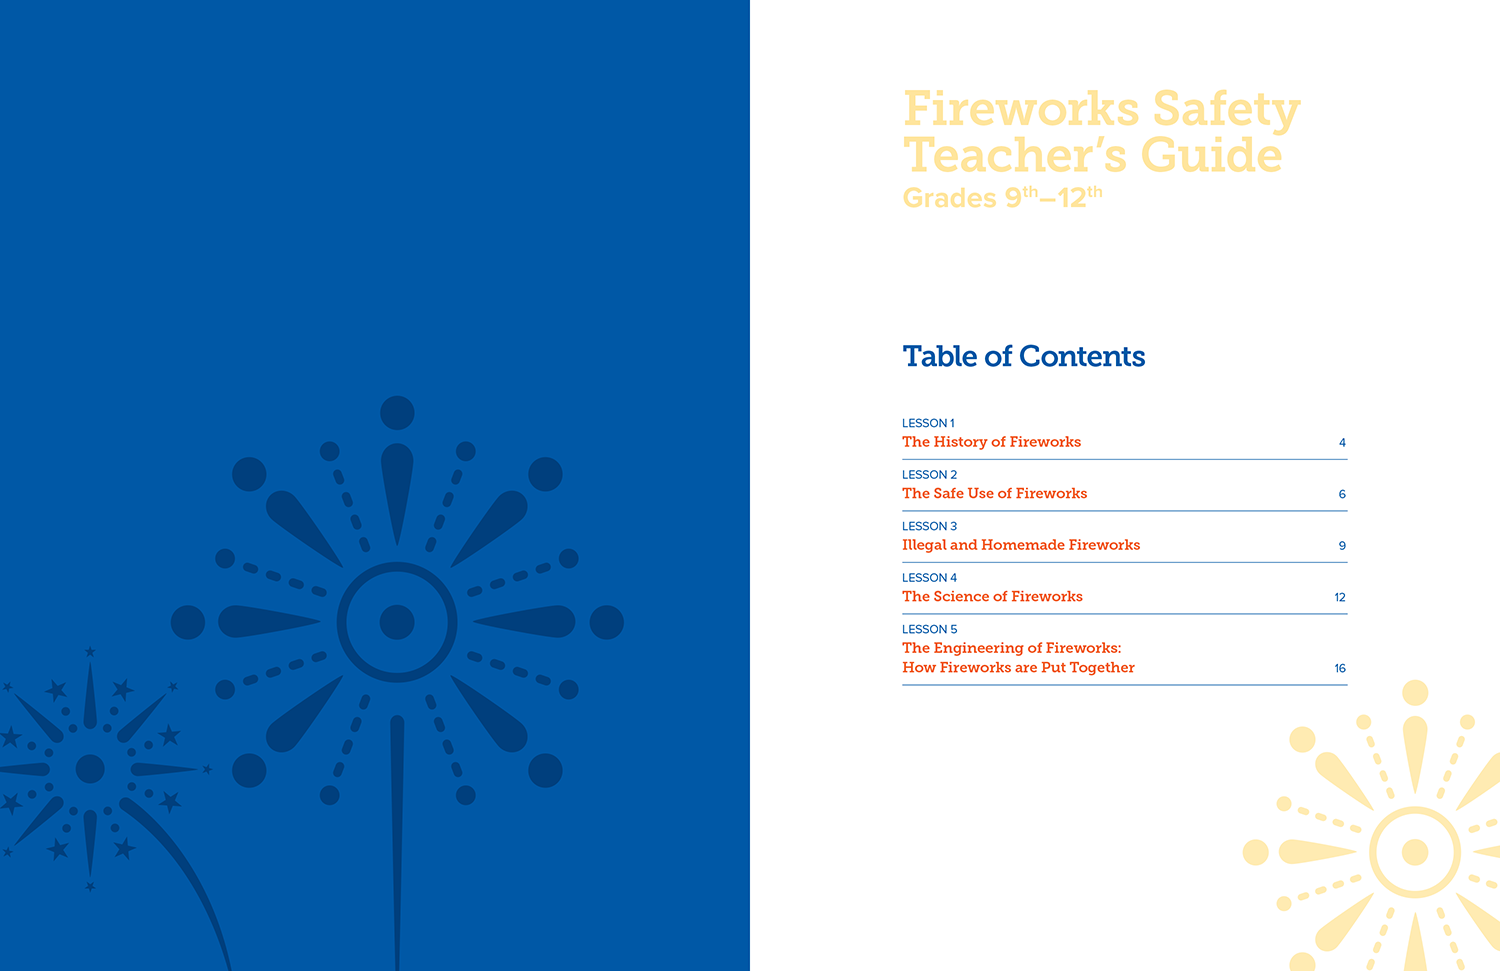 apa_fireworks-guide-2.png